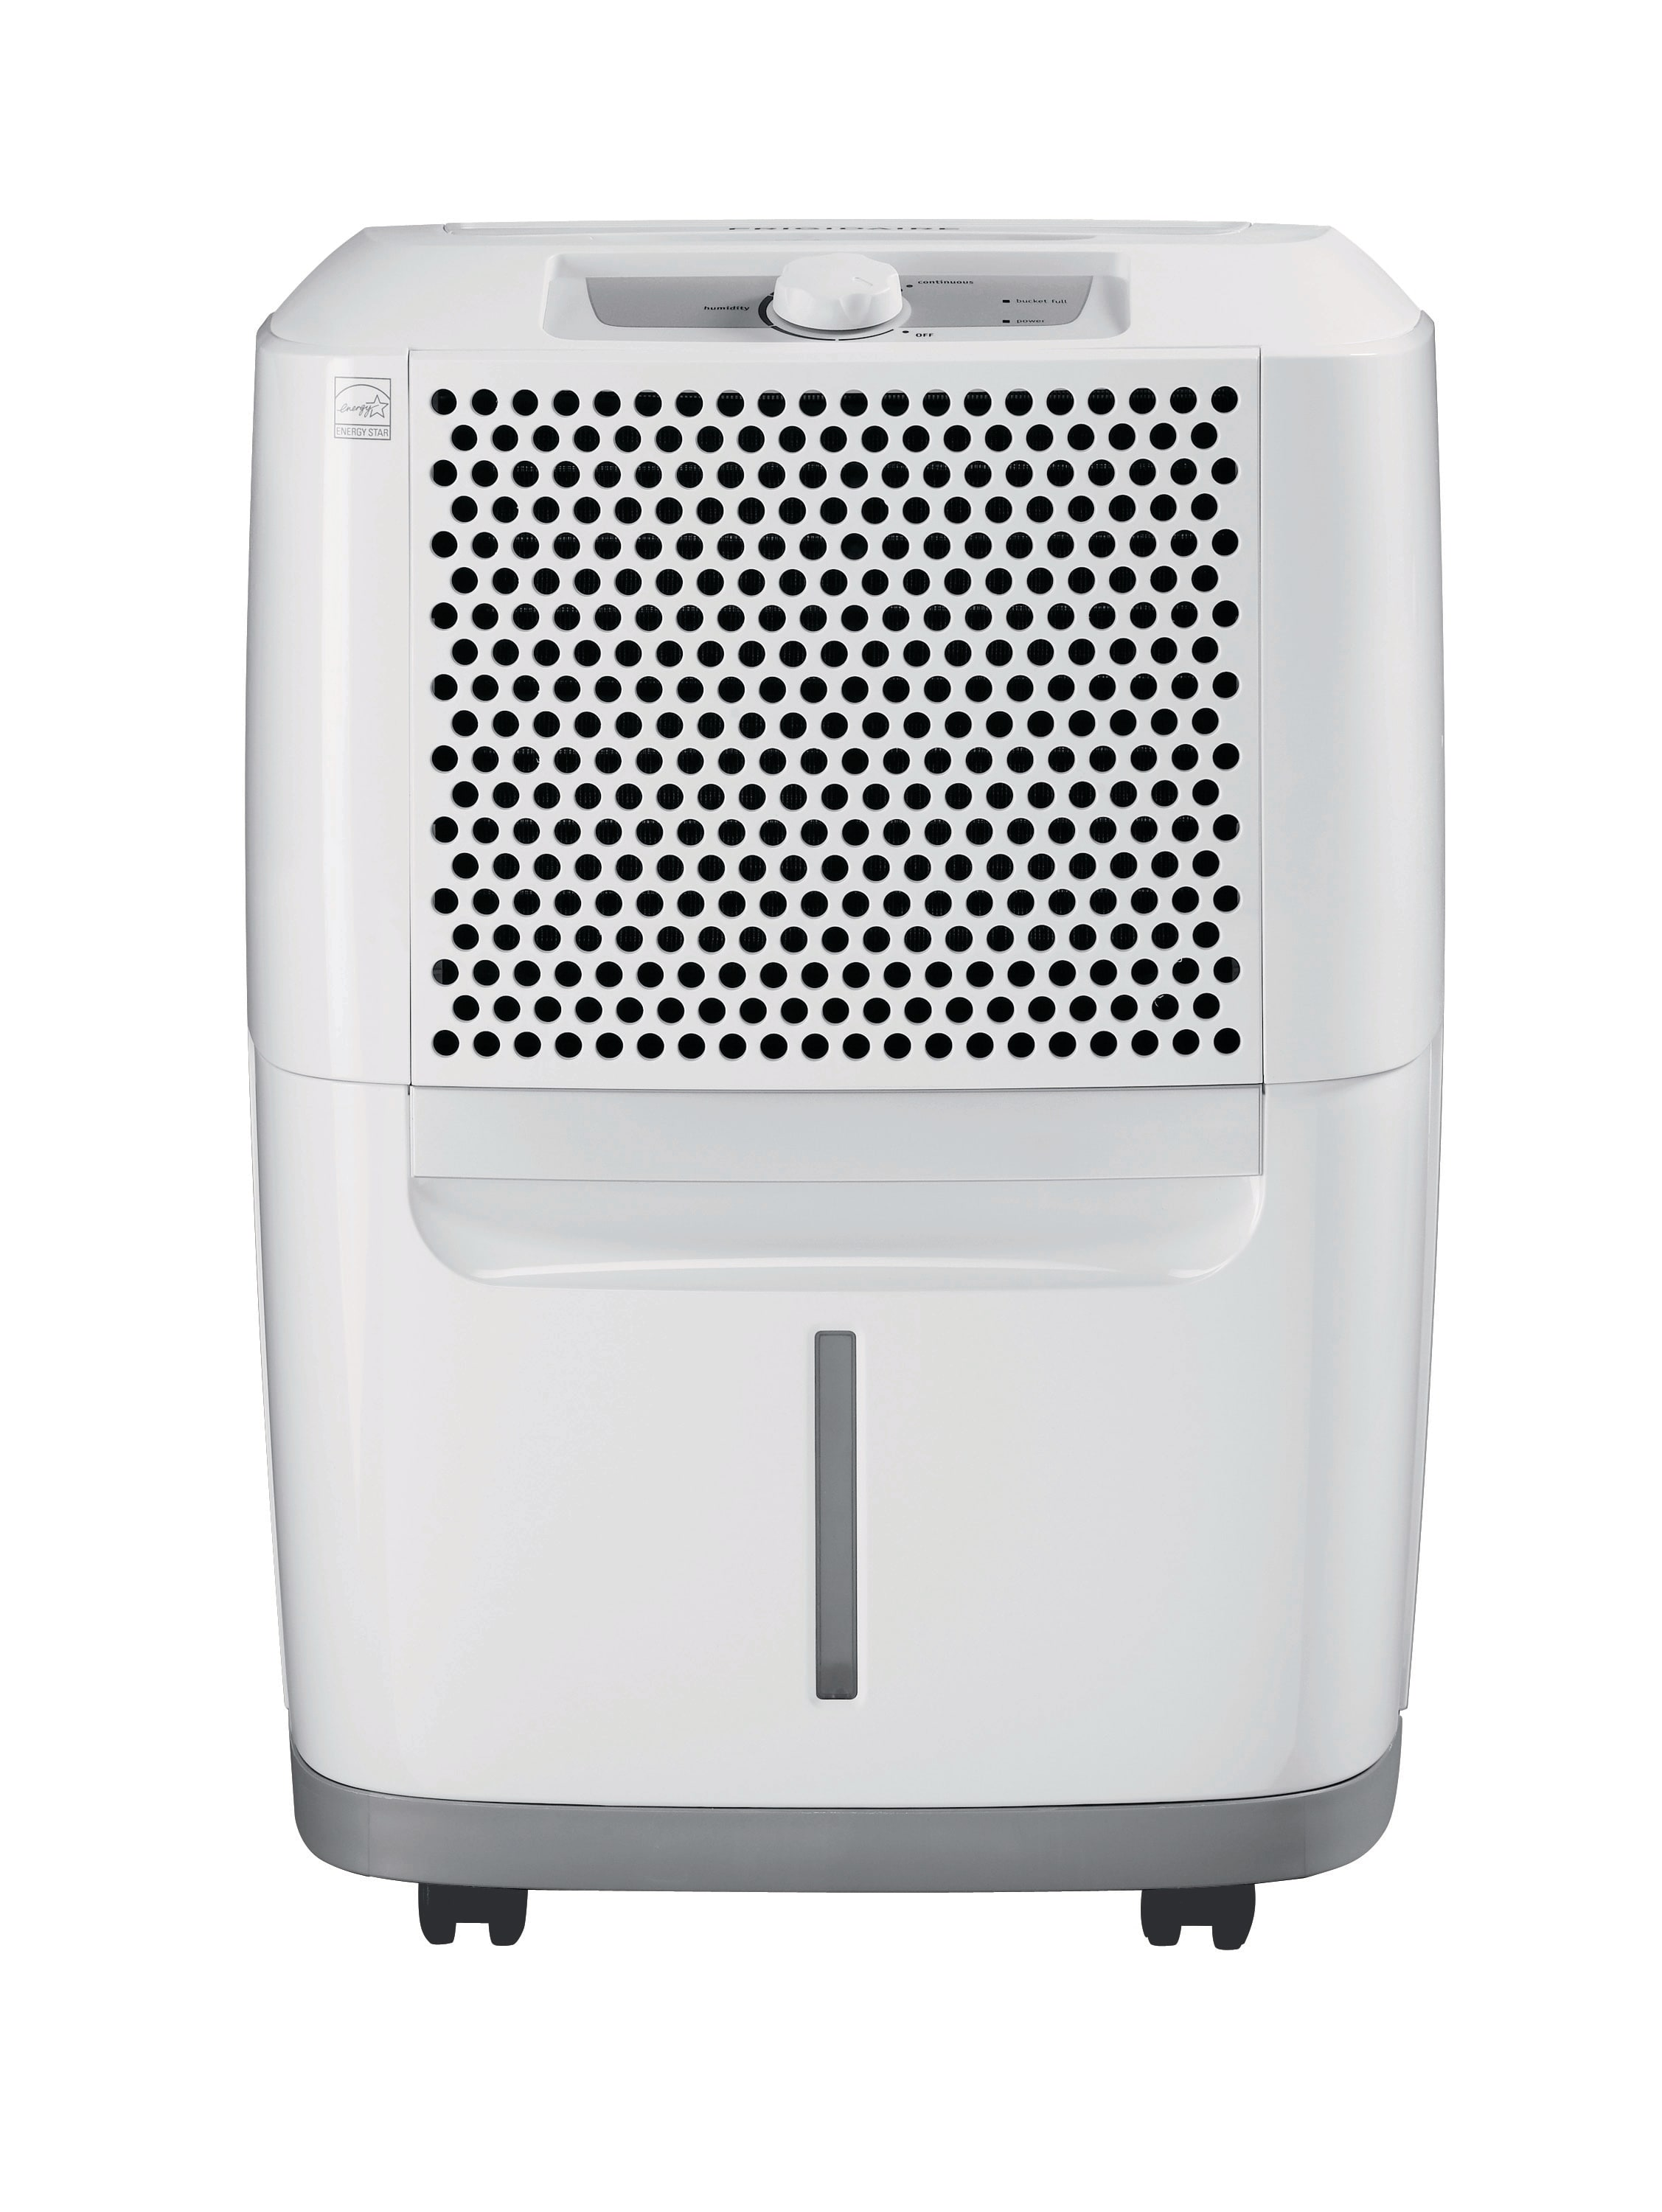 Small Room 30 Pint Capacity Dehumidifier